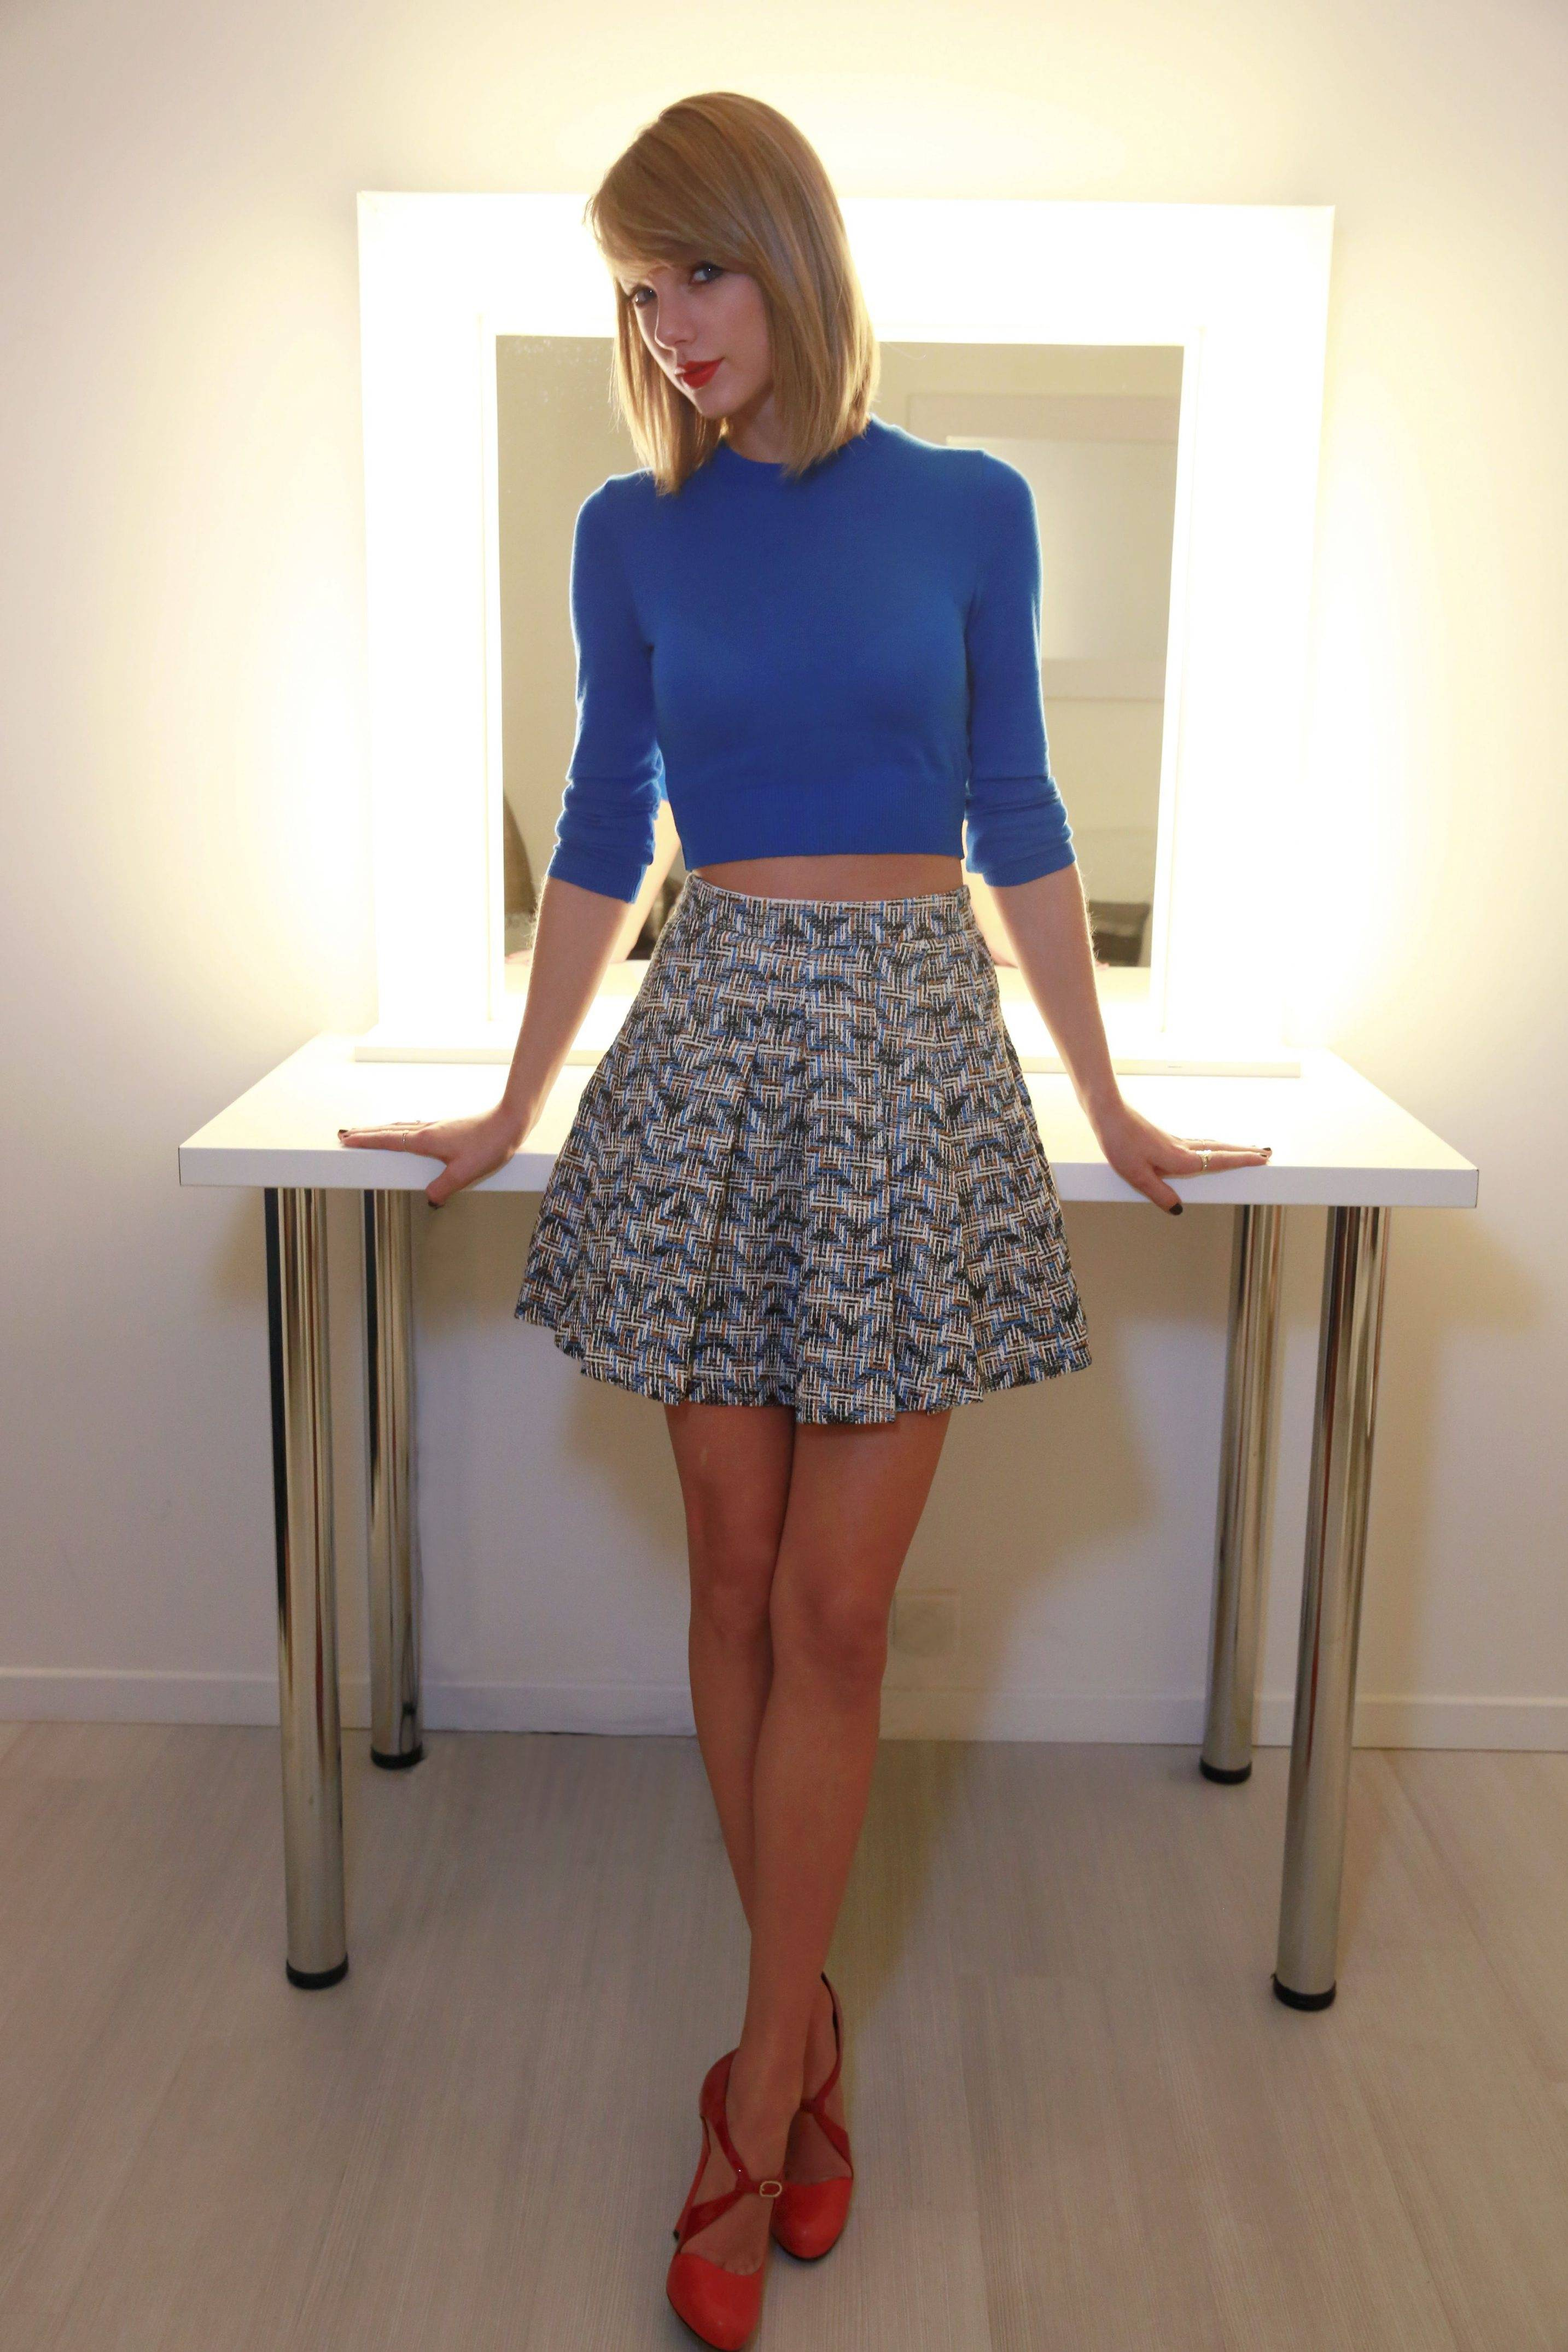 Taylor Swift Nude  The Leaked Pics She Never Wanted You -3457